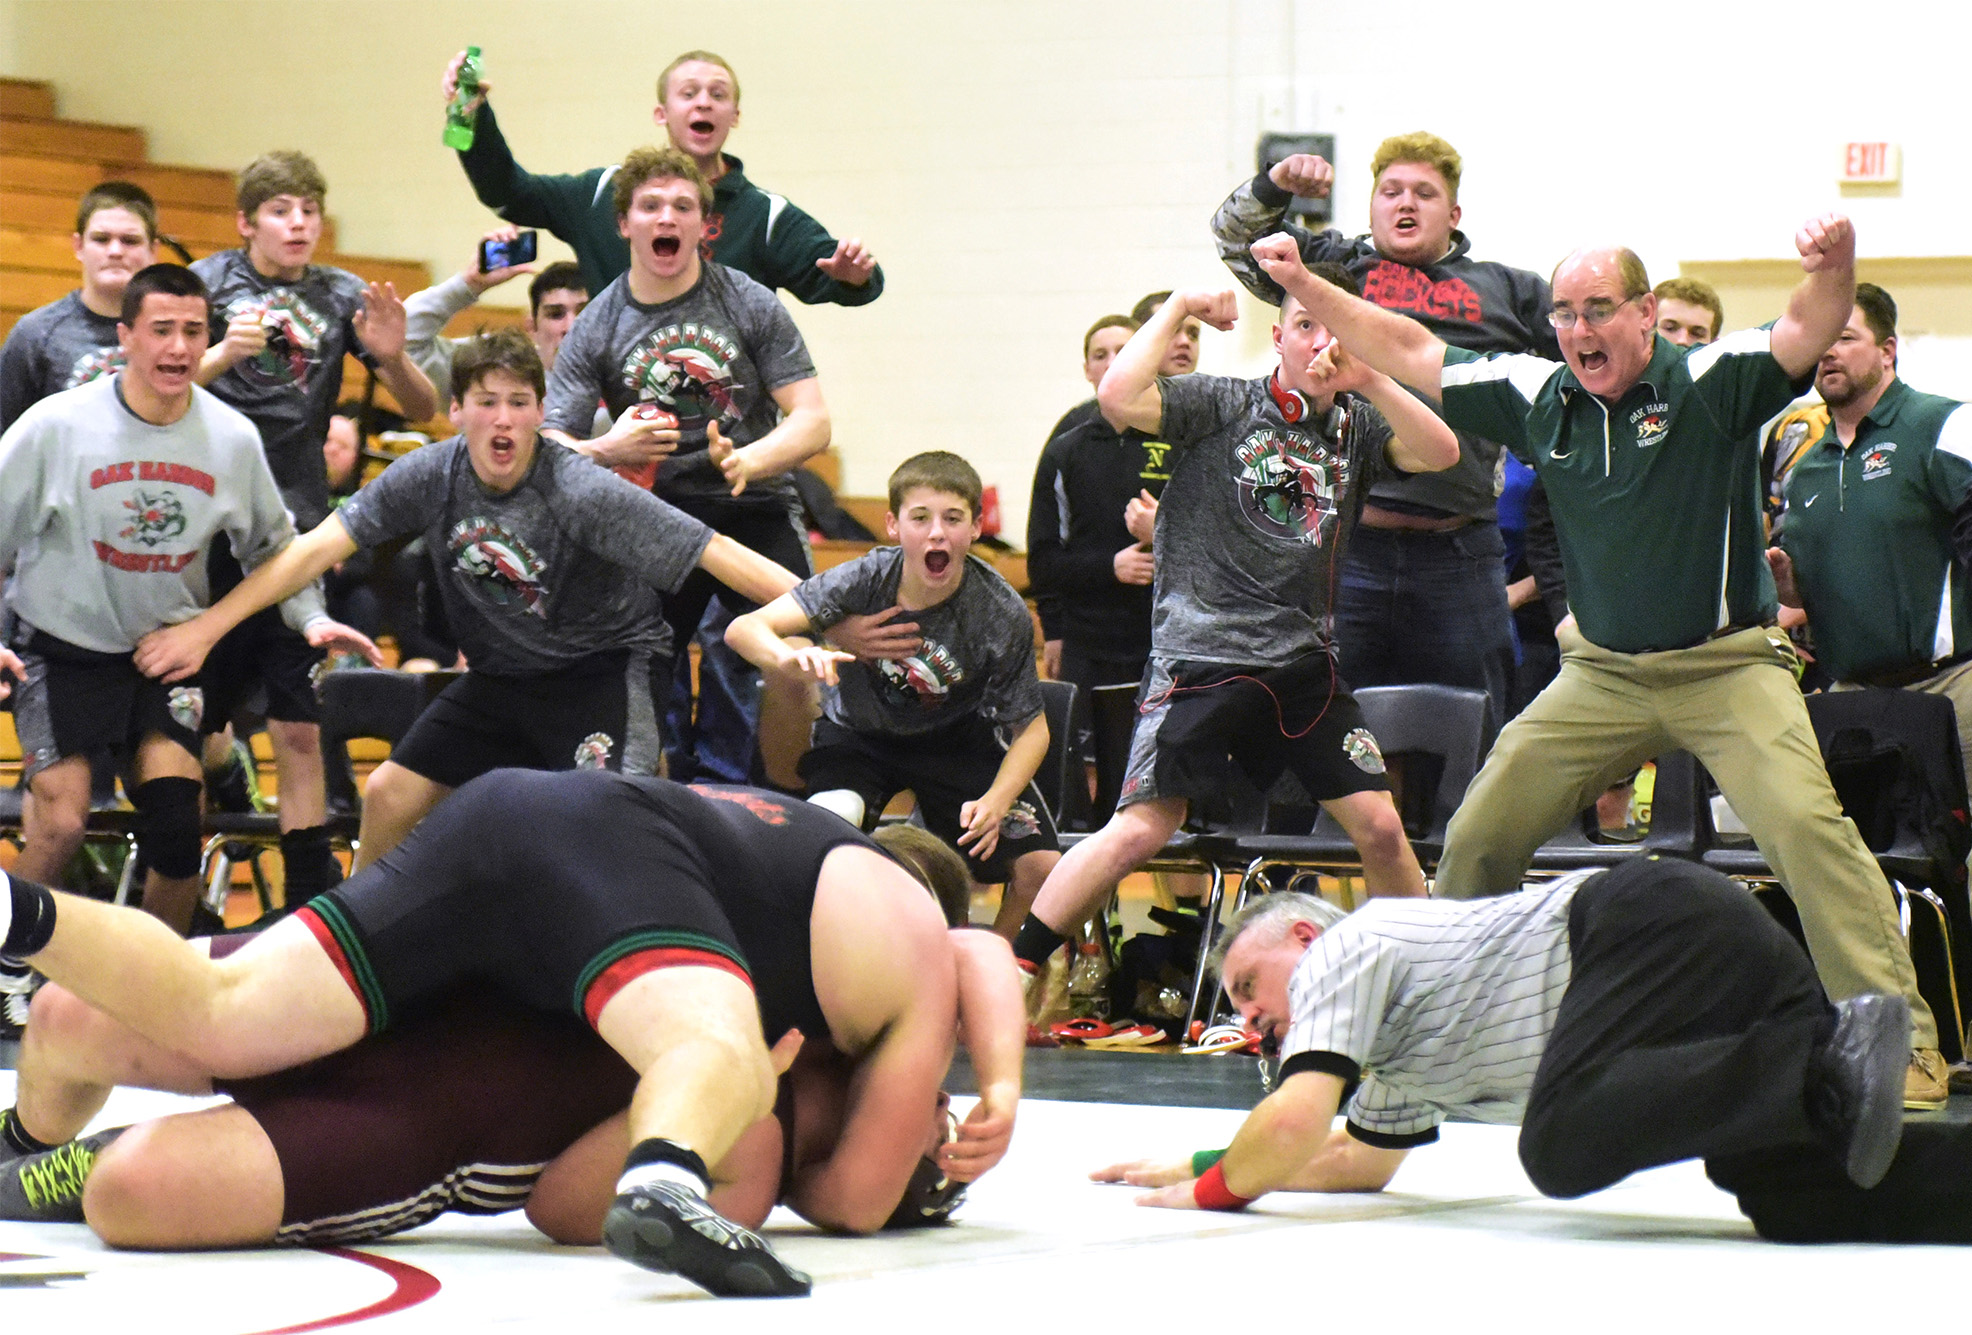 Oak Harbor's wrestling team reacts to Zach Laughlin wrestling Genoa's Christian Aranda in the match that put Oak Harbor ahead 29-26, the team's first lead of the night.